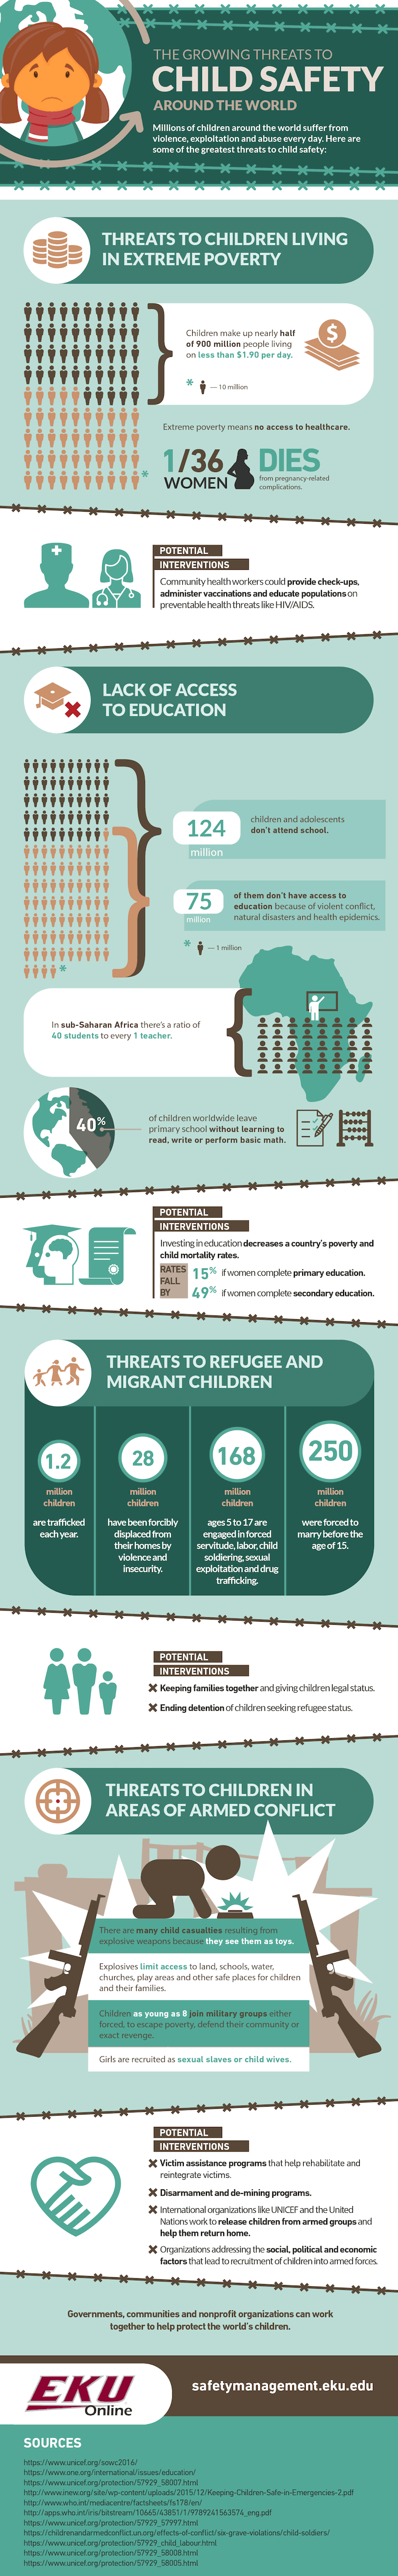 Infographic on the Growing Threat to Child Safety Around the World